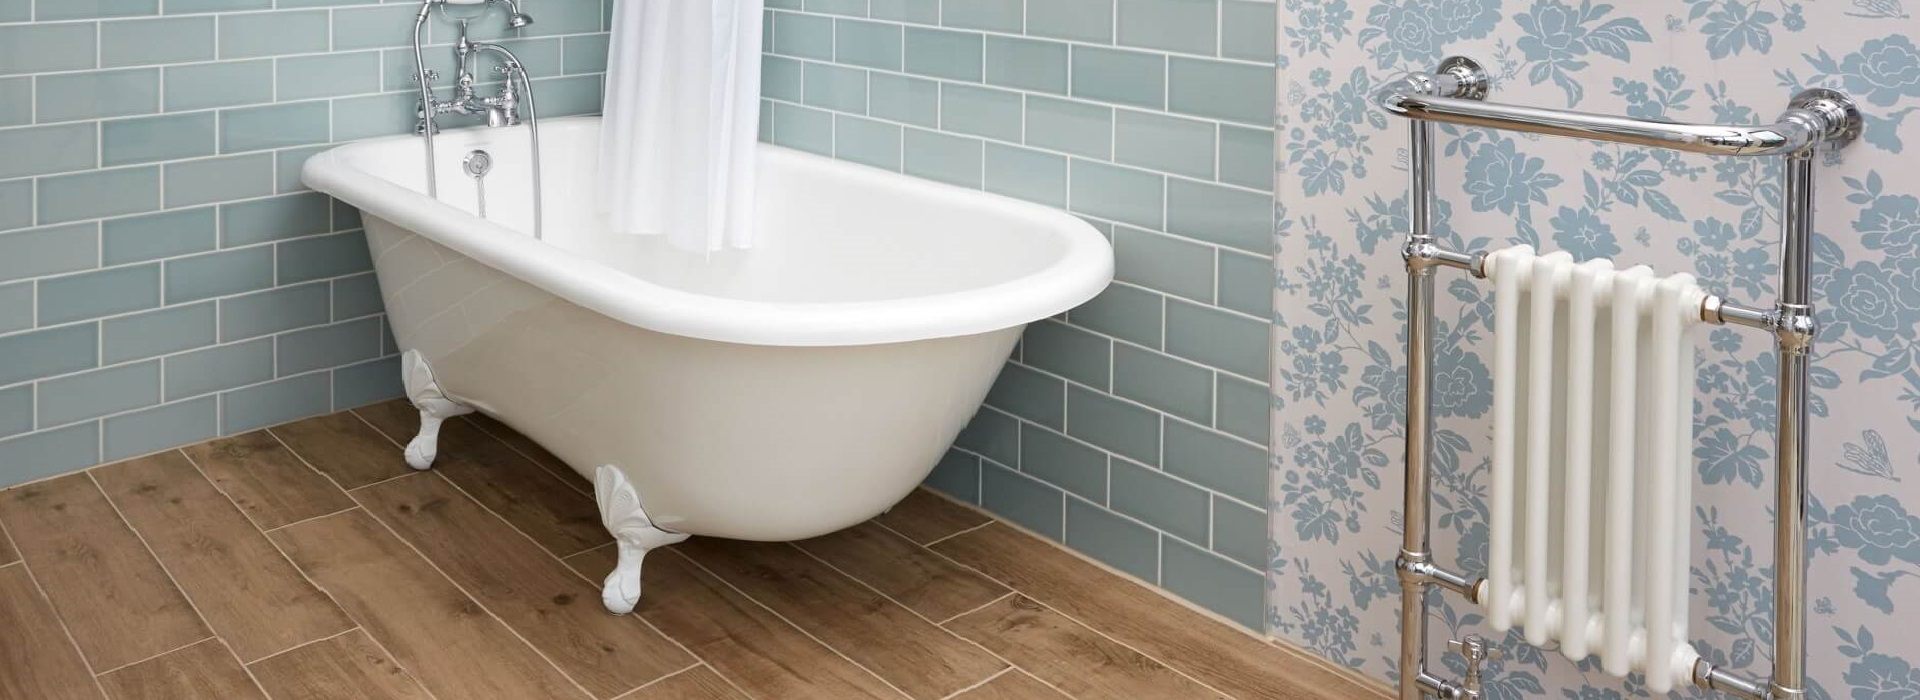 Alternative Tiles - Specialist Suppliers Of Wall And Floor Tiles, Particularly Victorian Floors